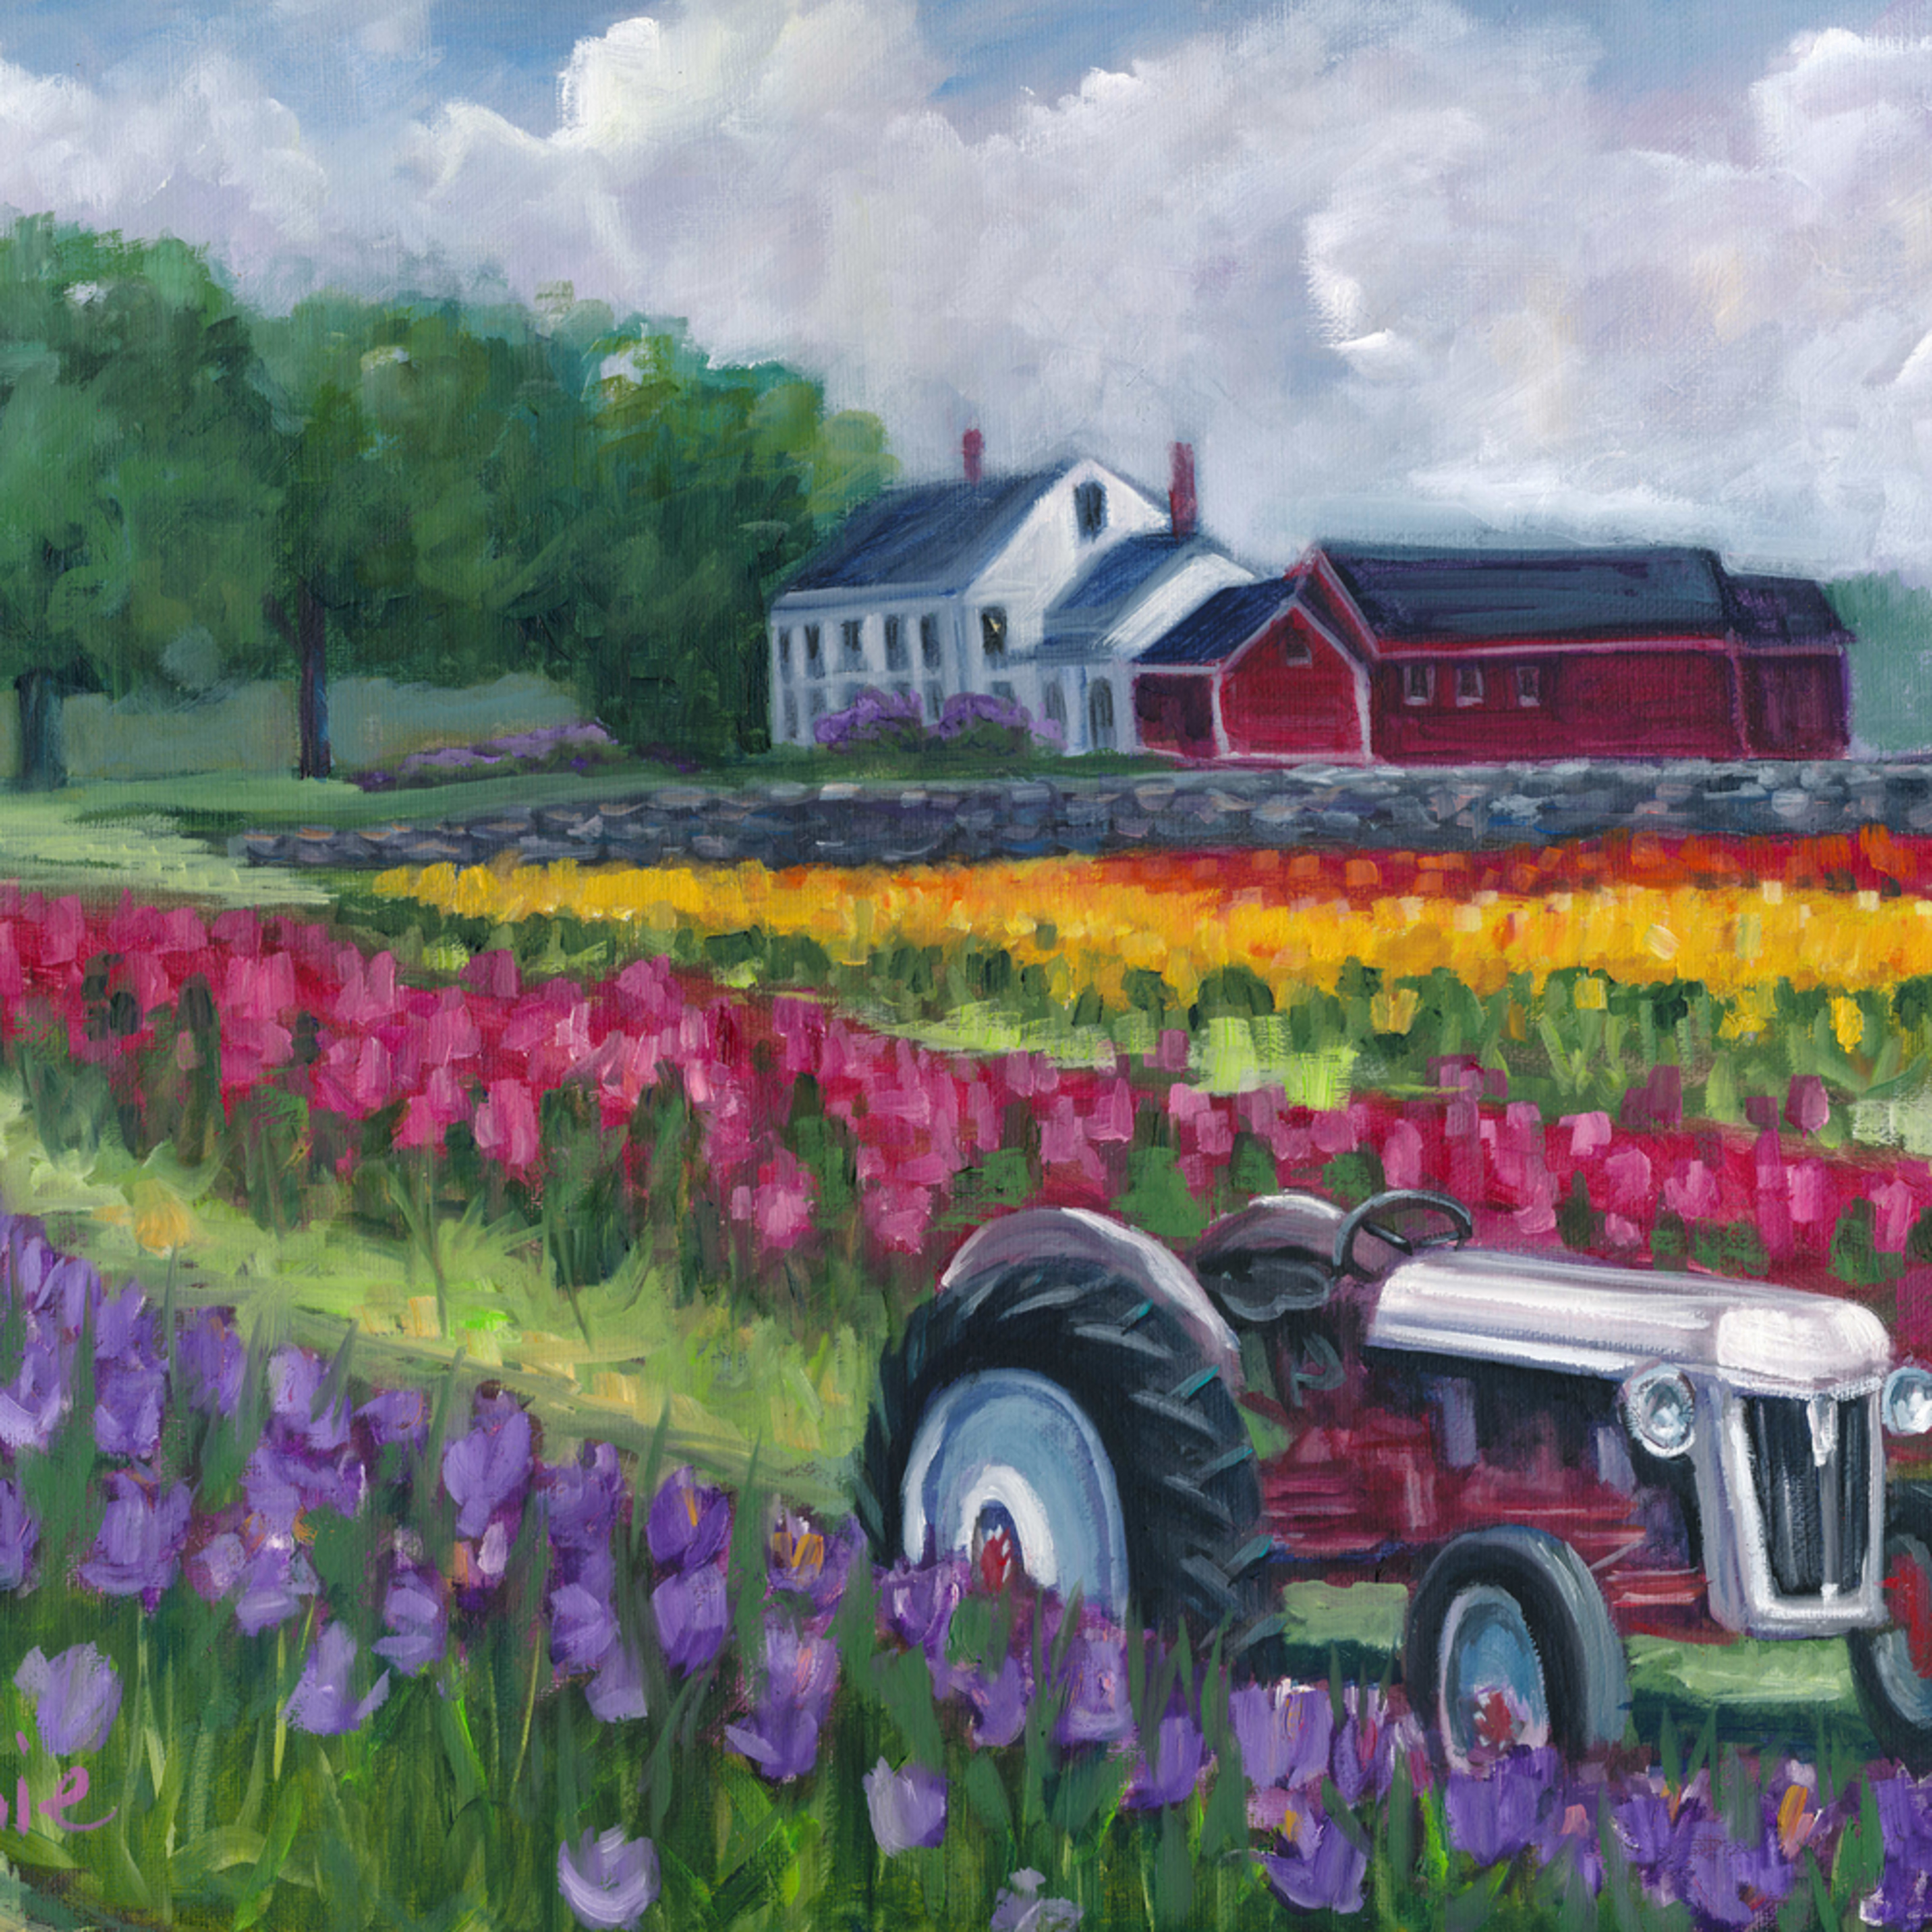 Tractoring through the tulips be8bzt